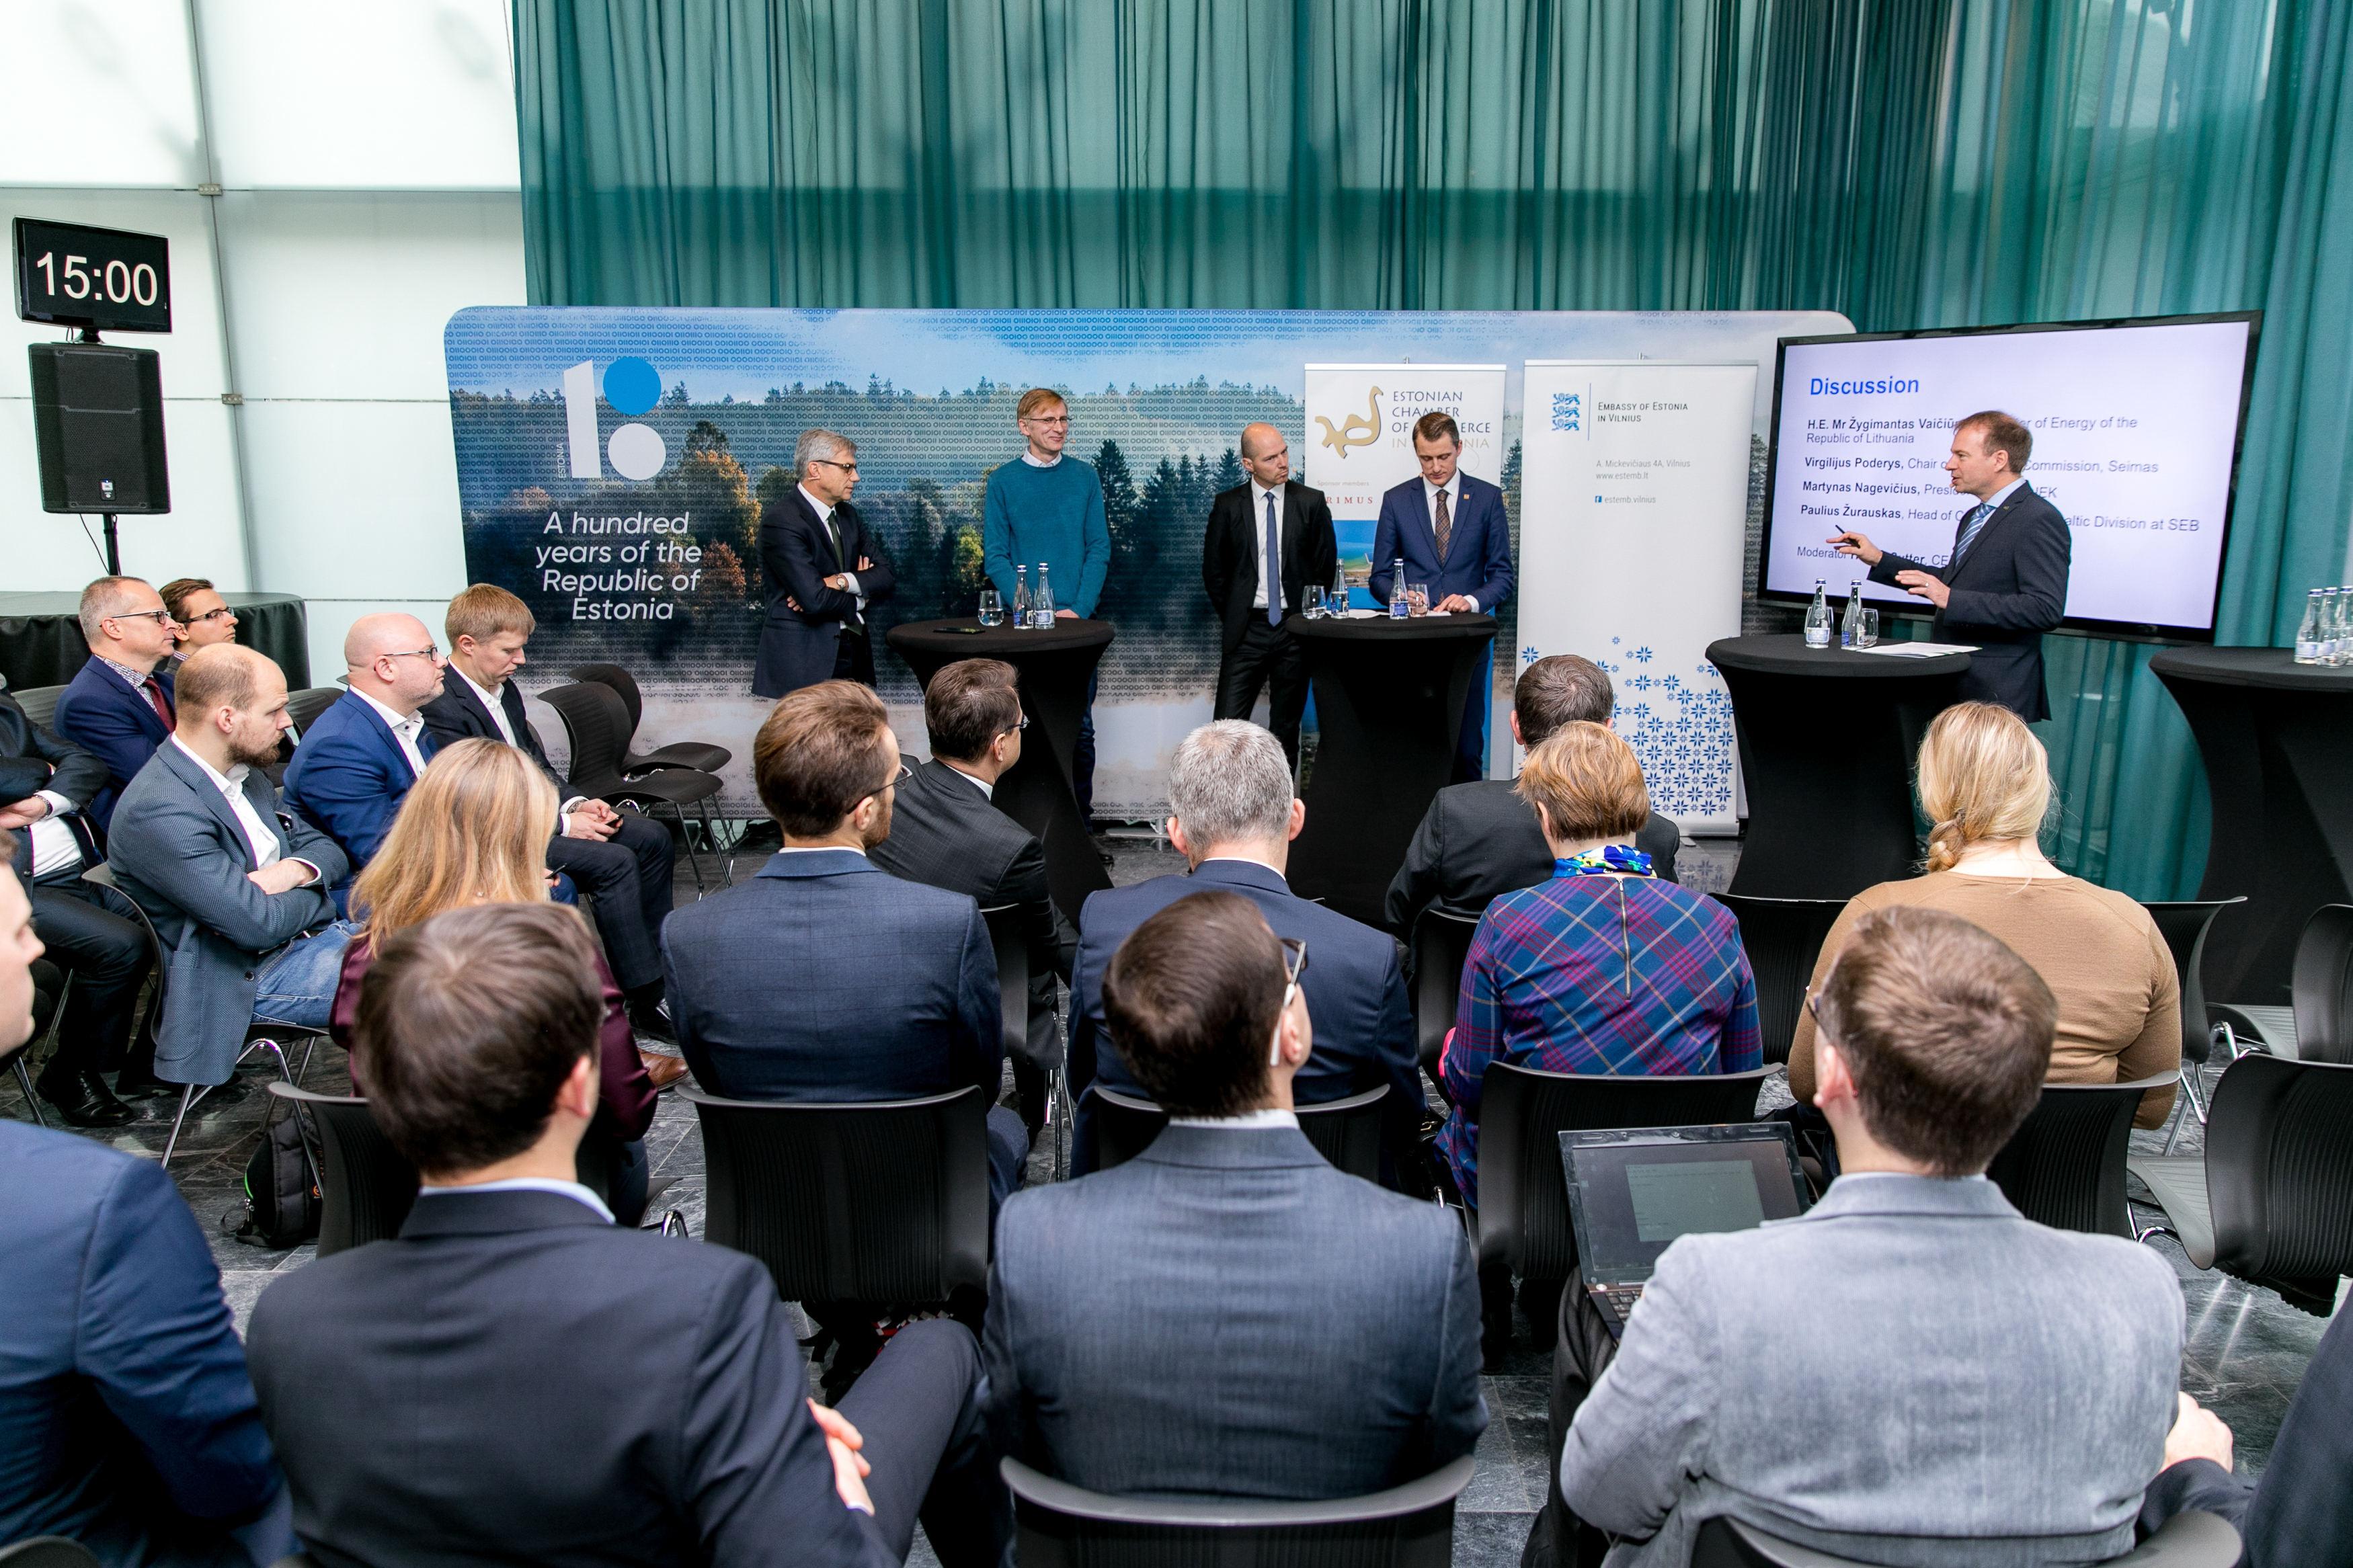 Roundtable on Renewable power in the Baltic Sea Region, November 28, 2018